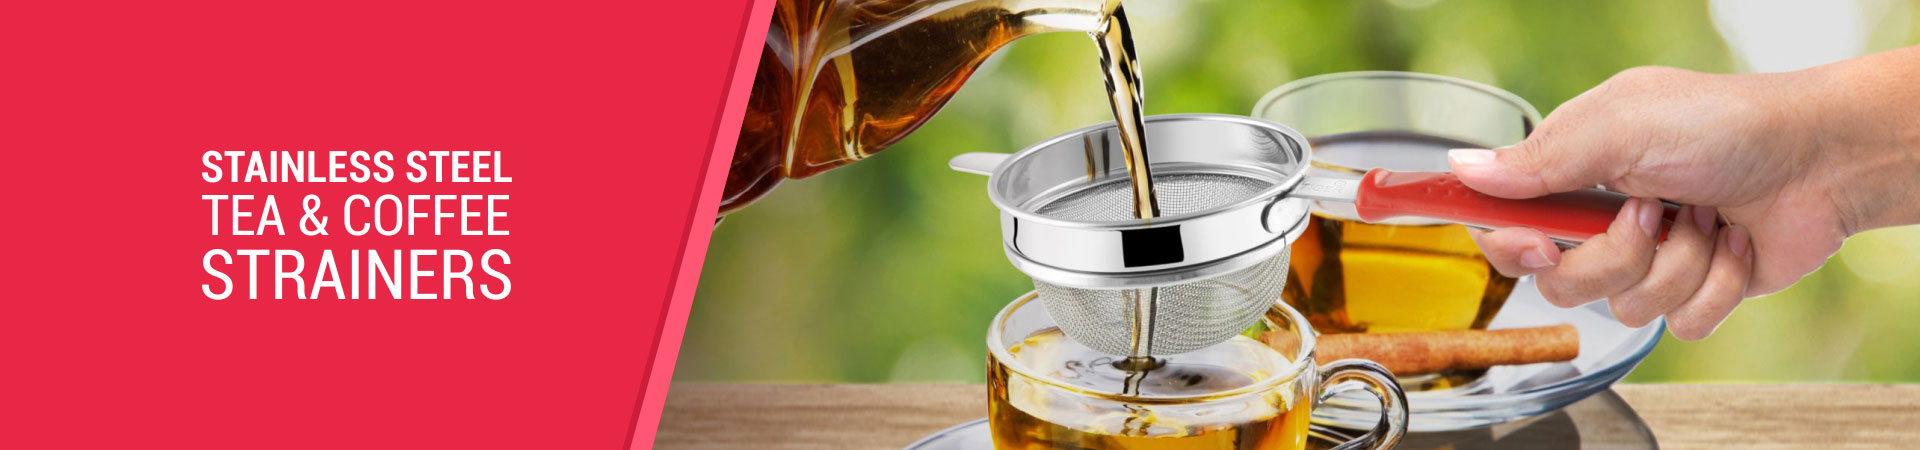 Stainless Steel Tea and Coffee Strainers